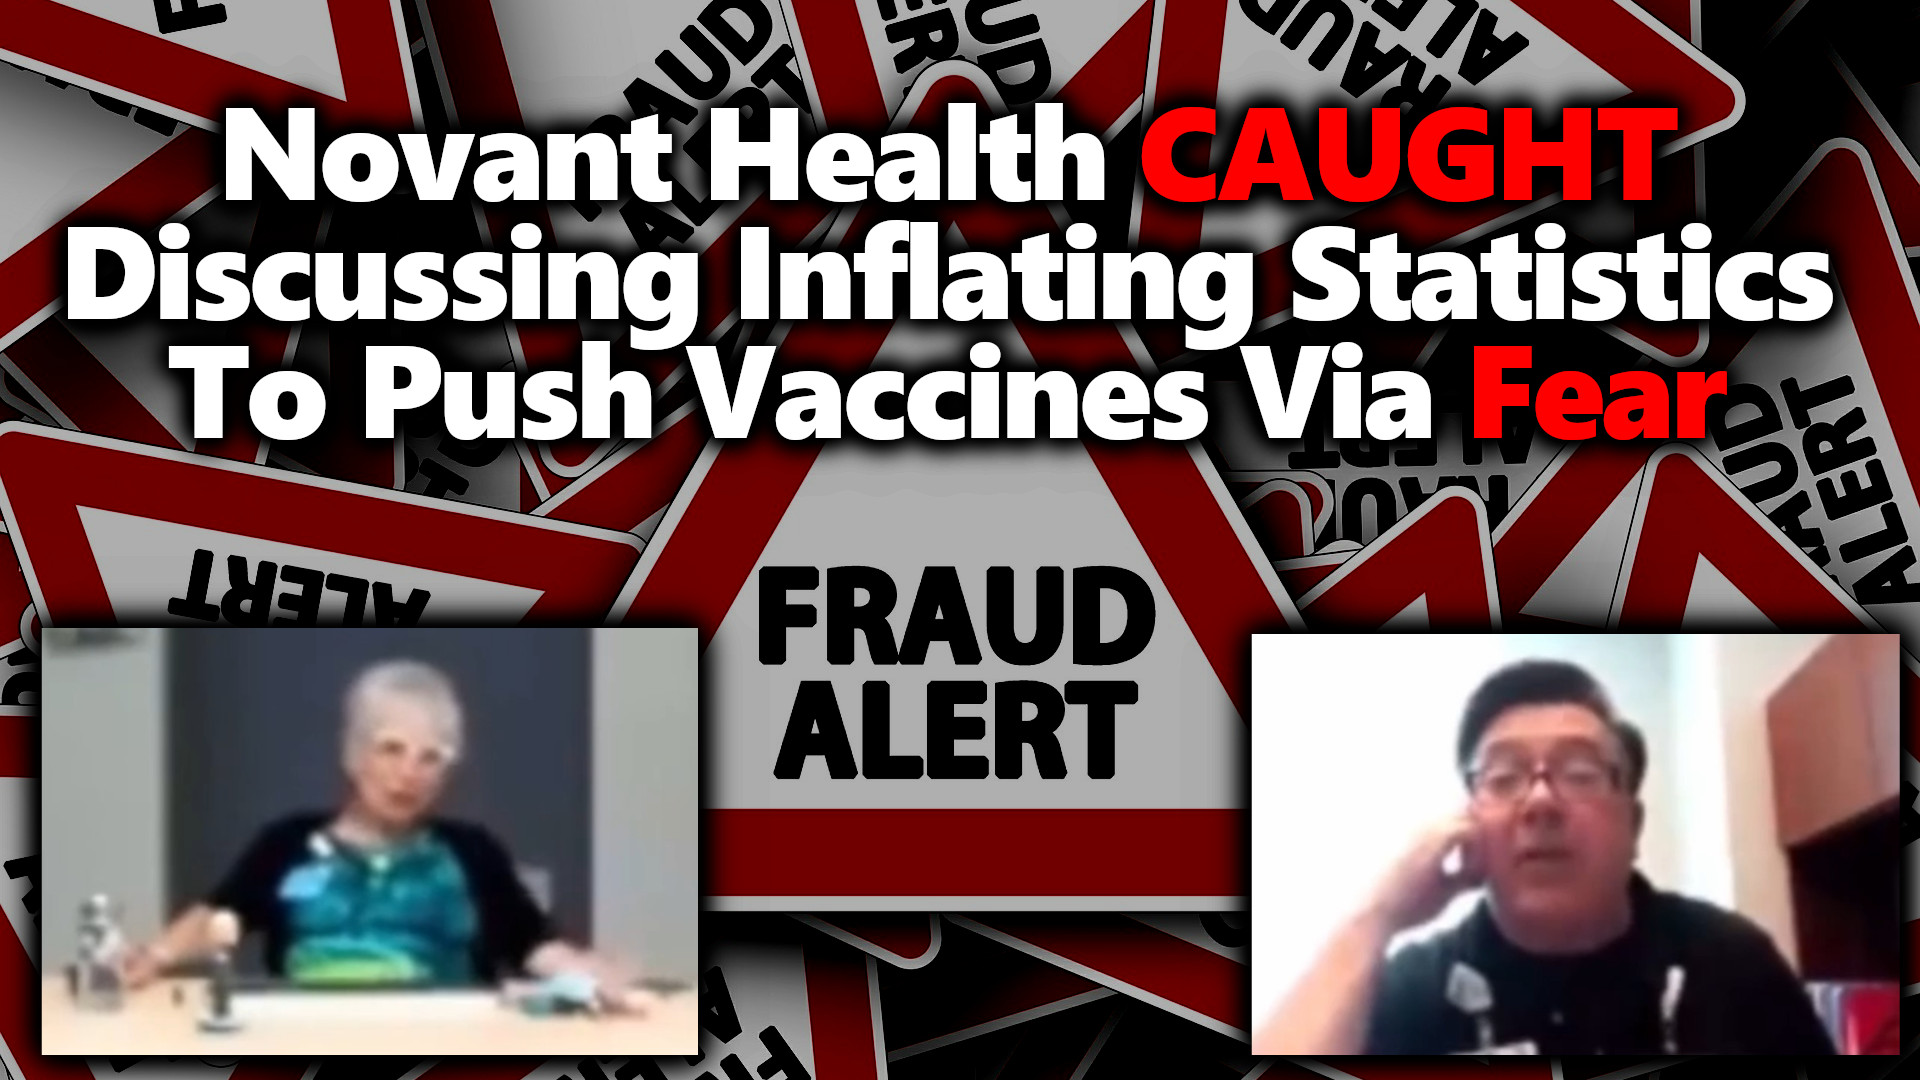 LEAKED: Novant Health BUSTED Discussing Falsifying Their Covid Stats For Vax Uptake